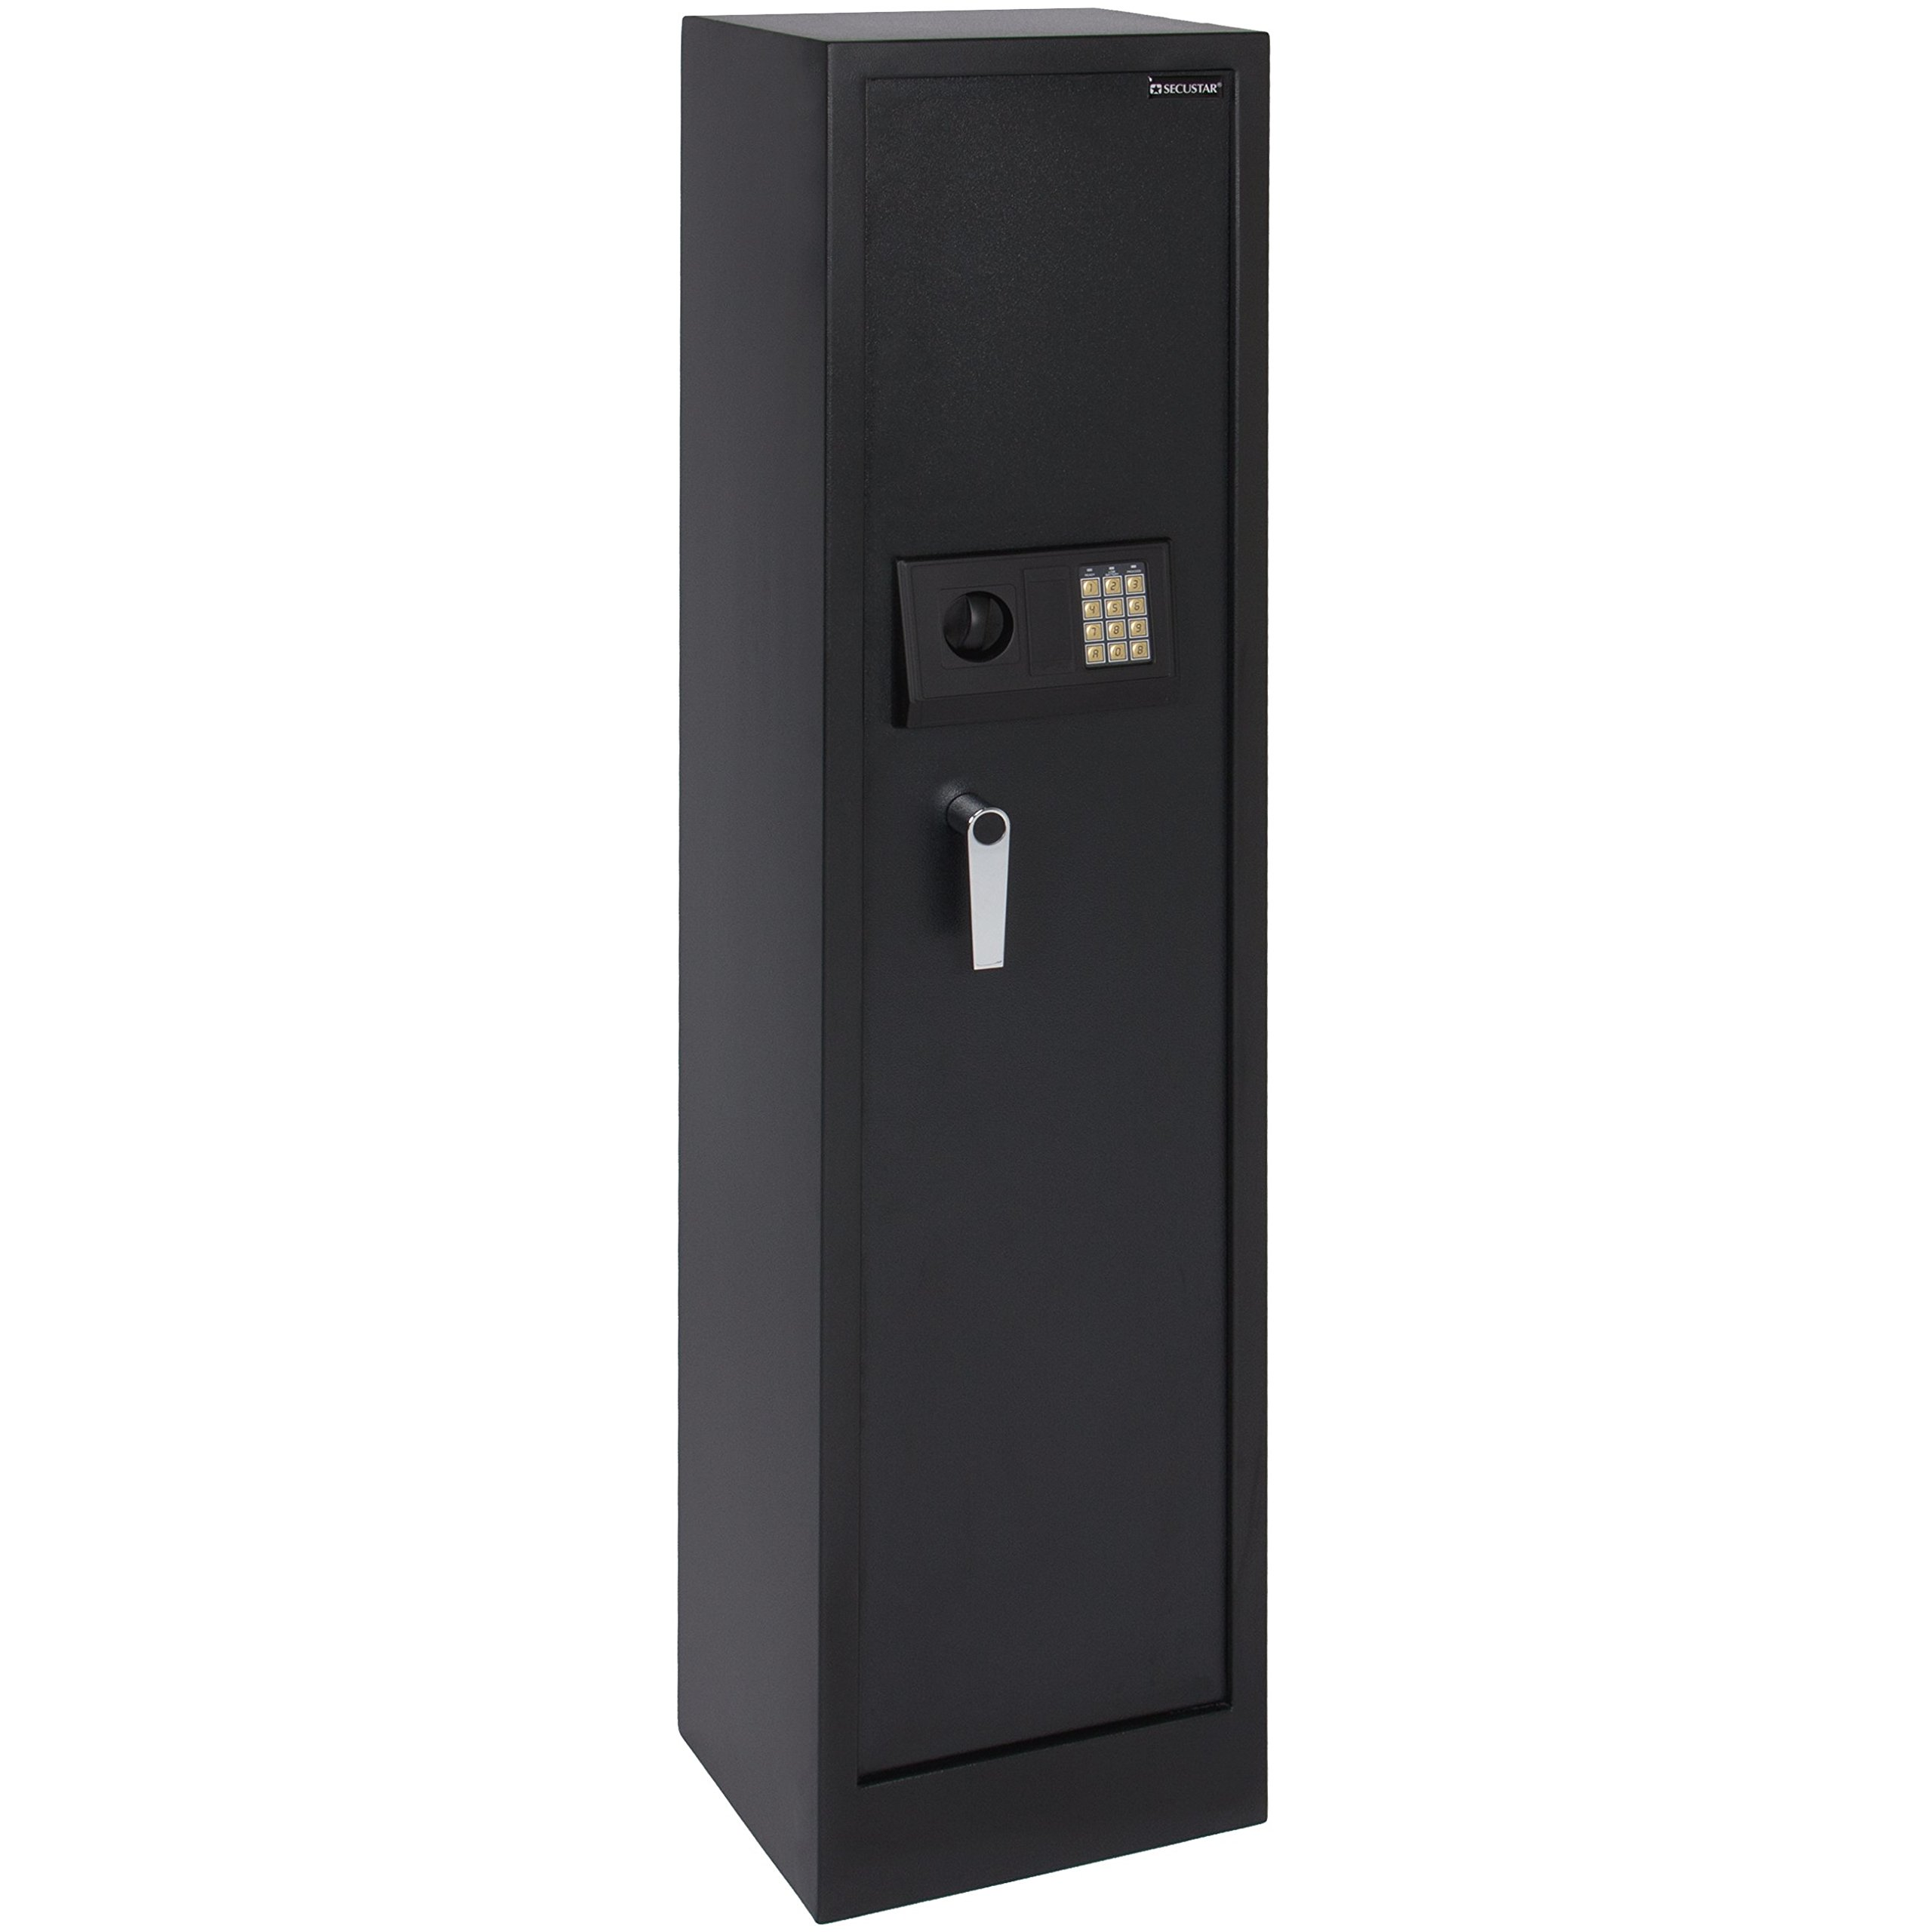 BCP Large 5 Rifle Digital Gun Safe Electronic Lock Storage Steel Cabinet Firearm